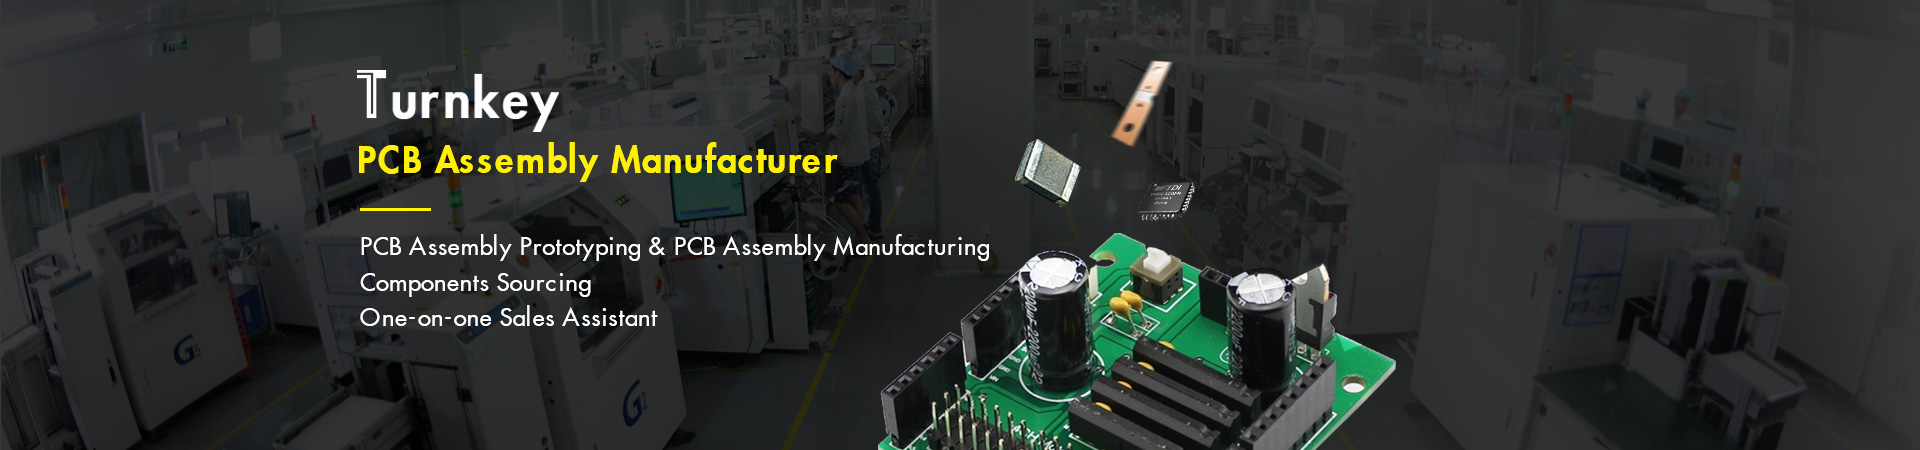 Turnkey PCB Assembly Manufacturer| PCB Mass production| Fast lead time